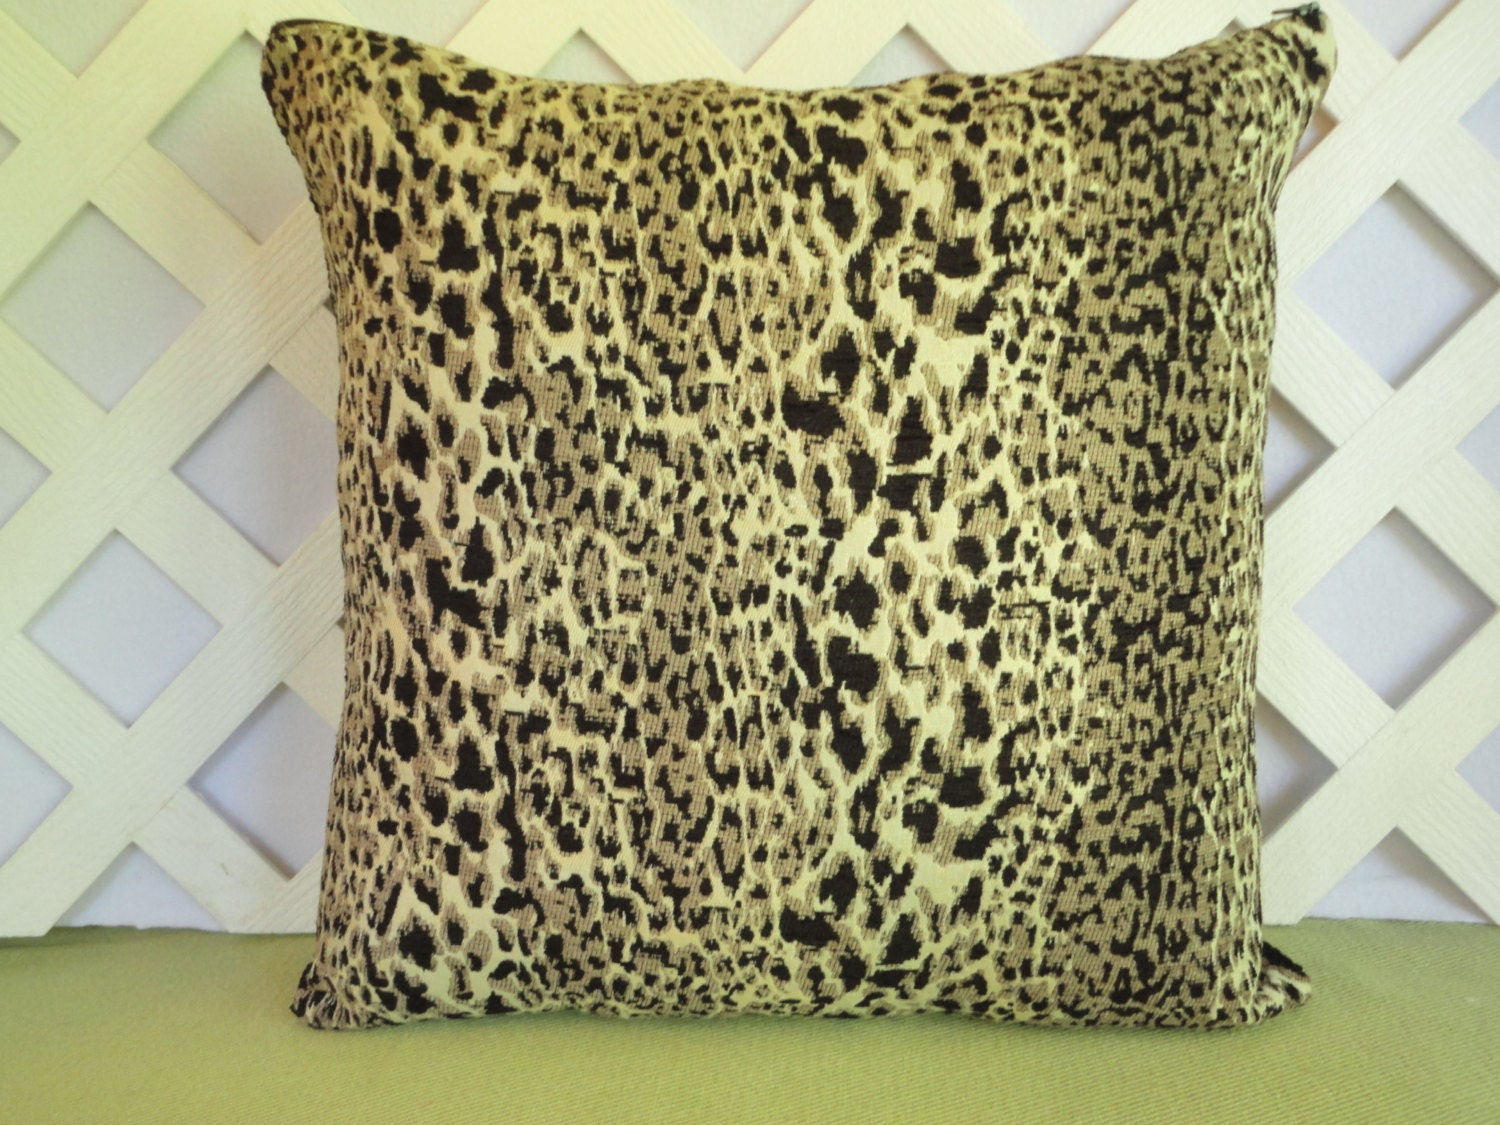 Animal Print Pillow Covers : Leopard Print Pillow Cover/ Animal Print Pillow Cover/ Tan